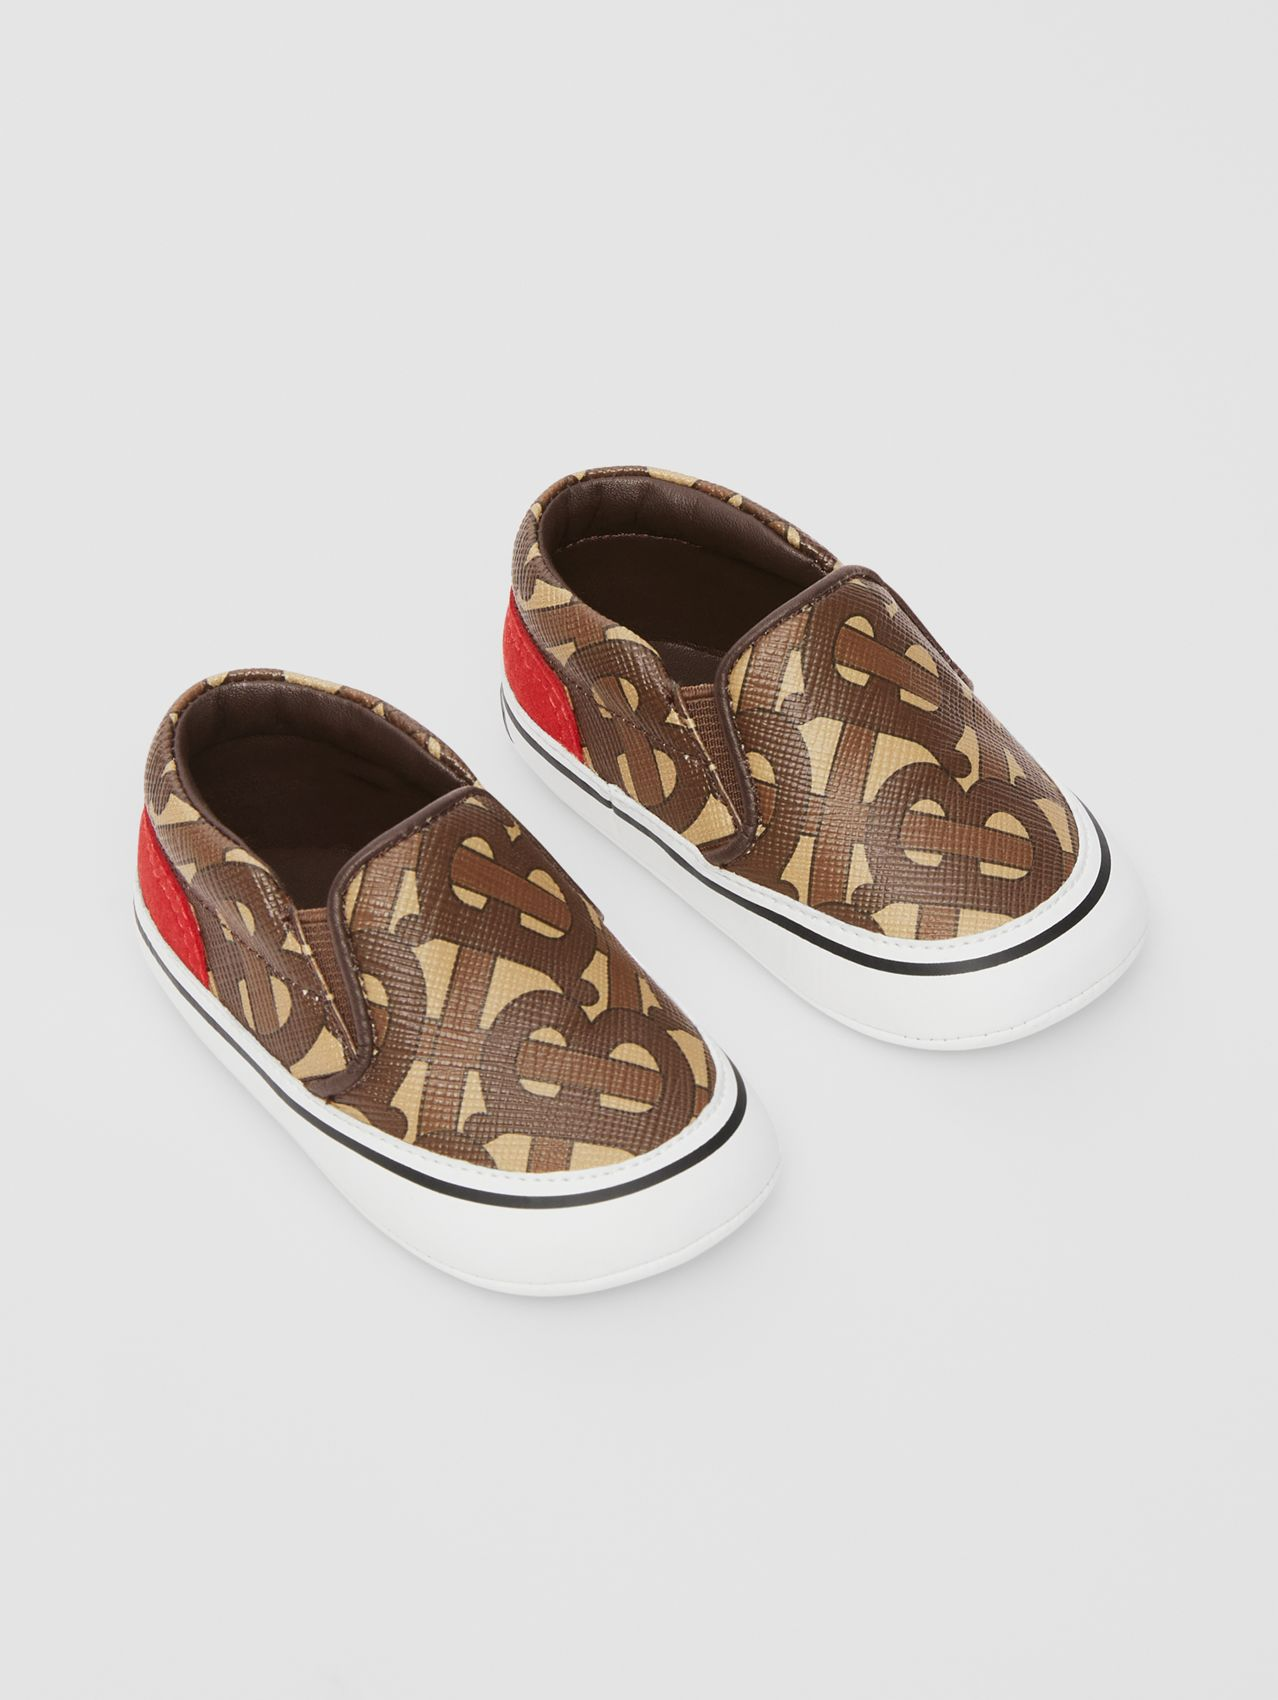 Monogram Print E-canvas Slip-on Shoes (Bridle Brown)